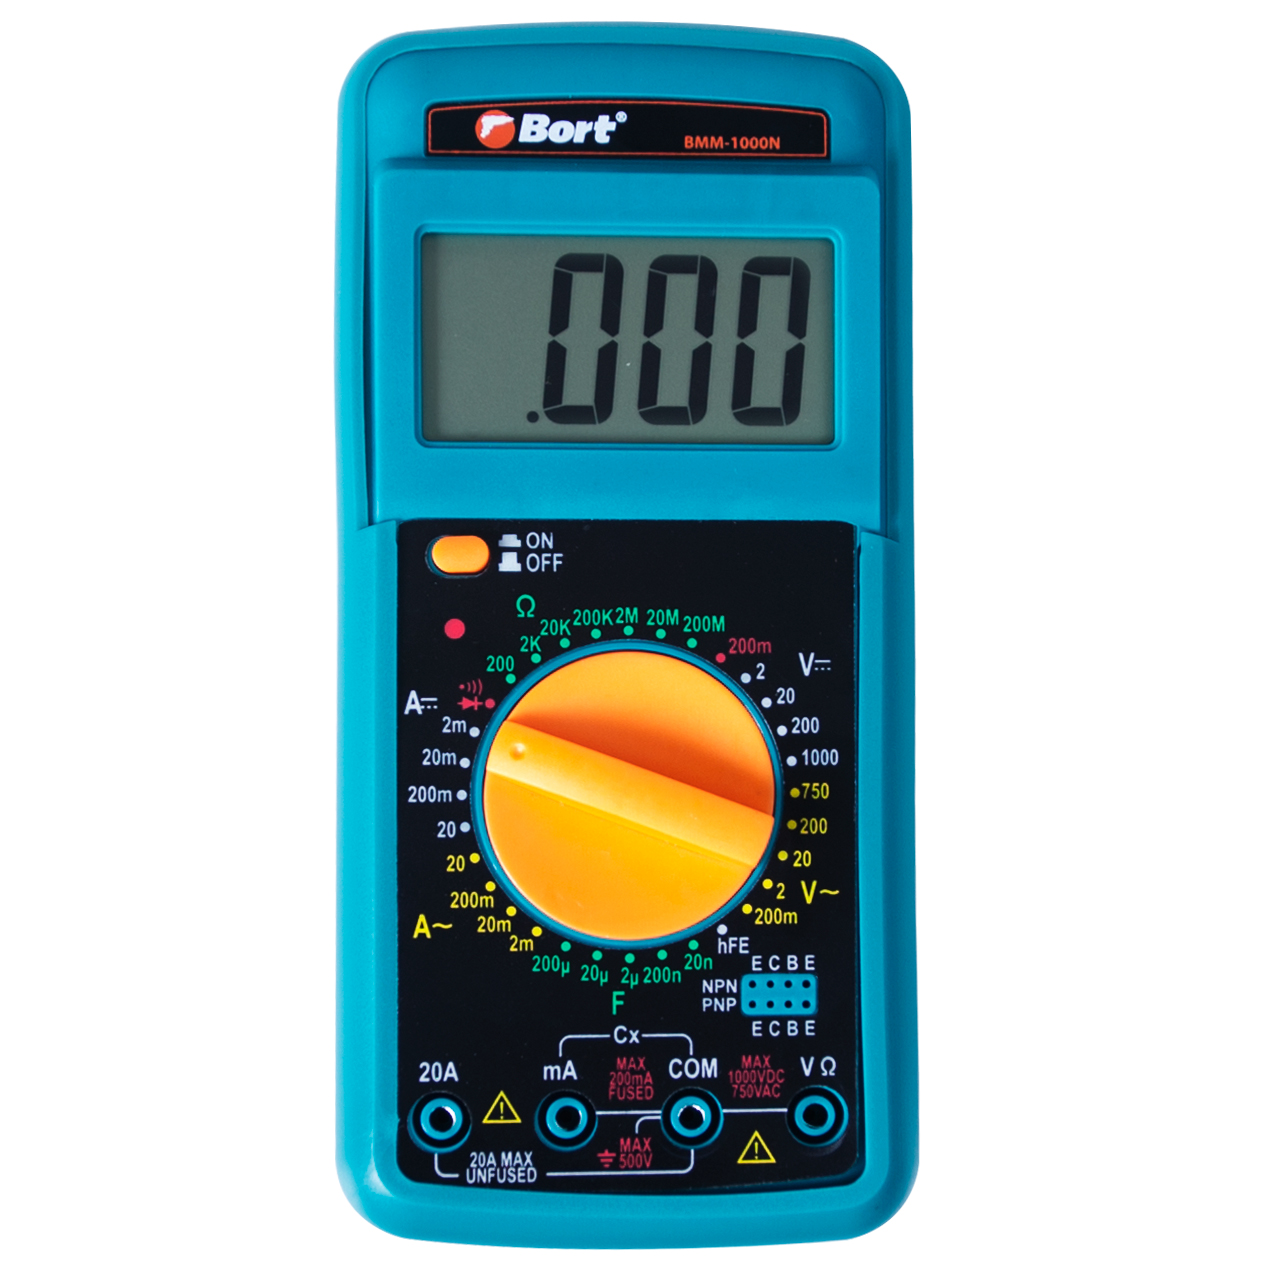 Multitester Bort BMM-1000N (measurement DC to 1000 V, AC current, resistance, case with retractable stand and rubber case, test leads battery included) mastech ms2108a professional 4 000 points ac current dc clamp meter digital multimeter ohm resistance backlight